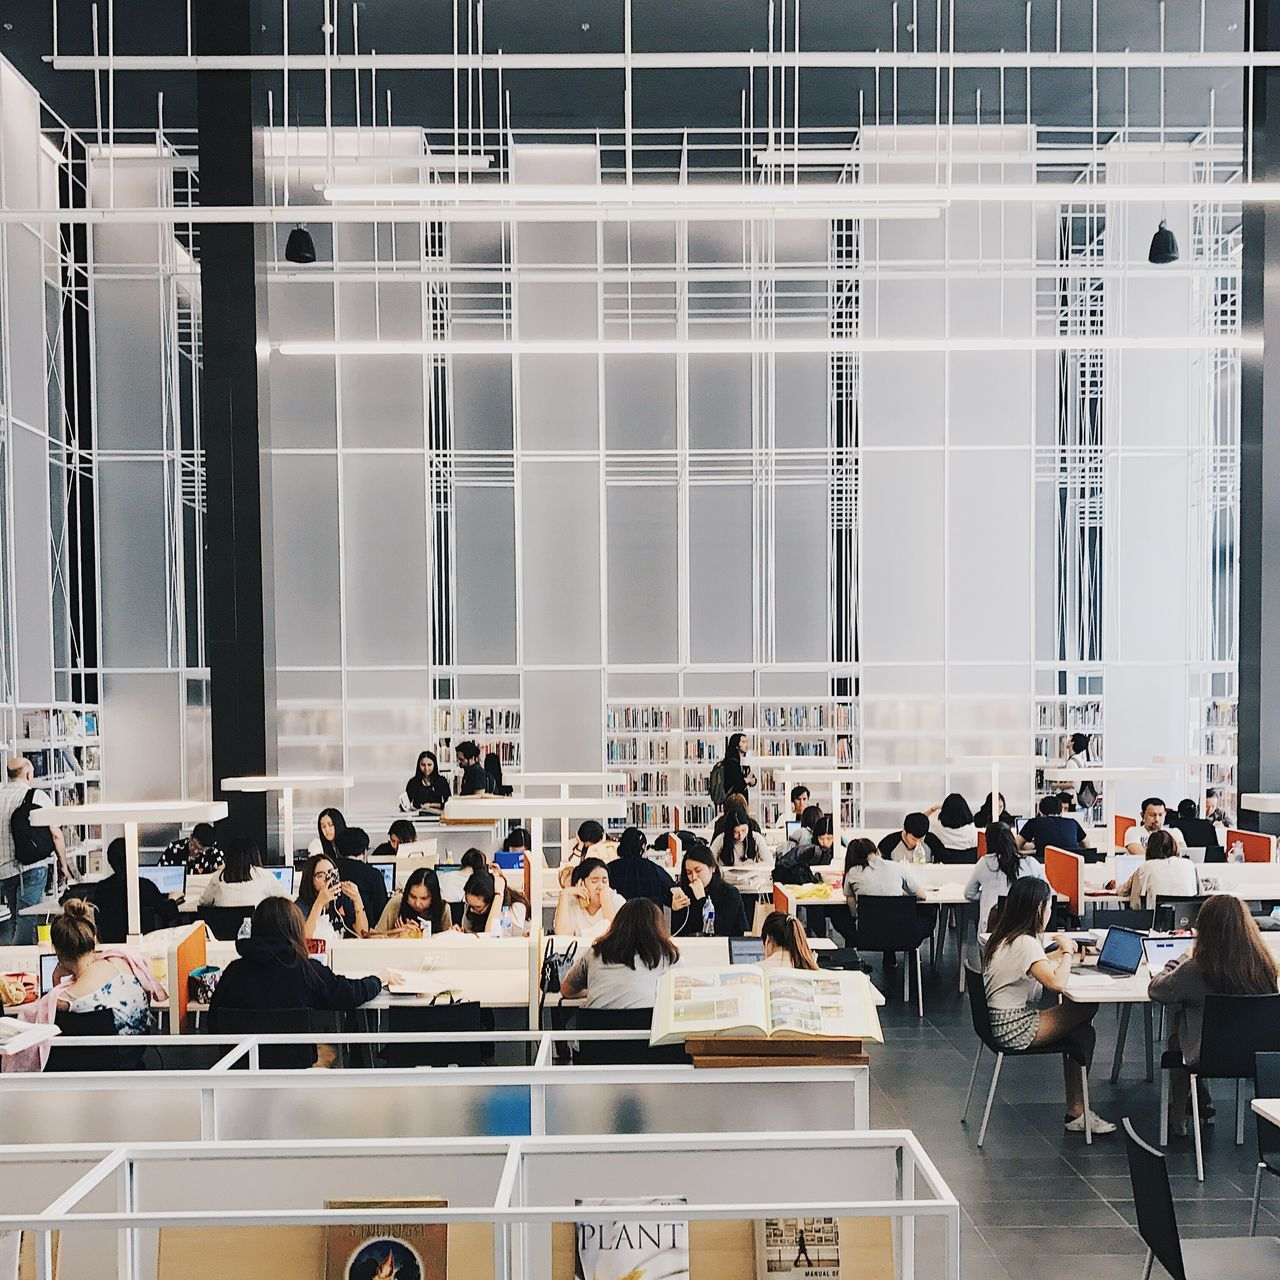 Occupation Large Group Of People Sitting Crowd Indoors  Business Modern Architecture People Working Coworker Indoors  Office Built Structure Architecture Book Shelf Bookshelf Library